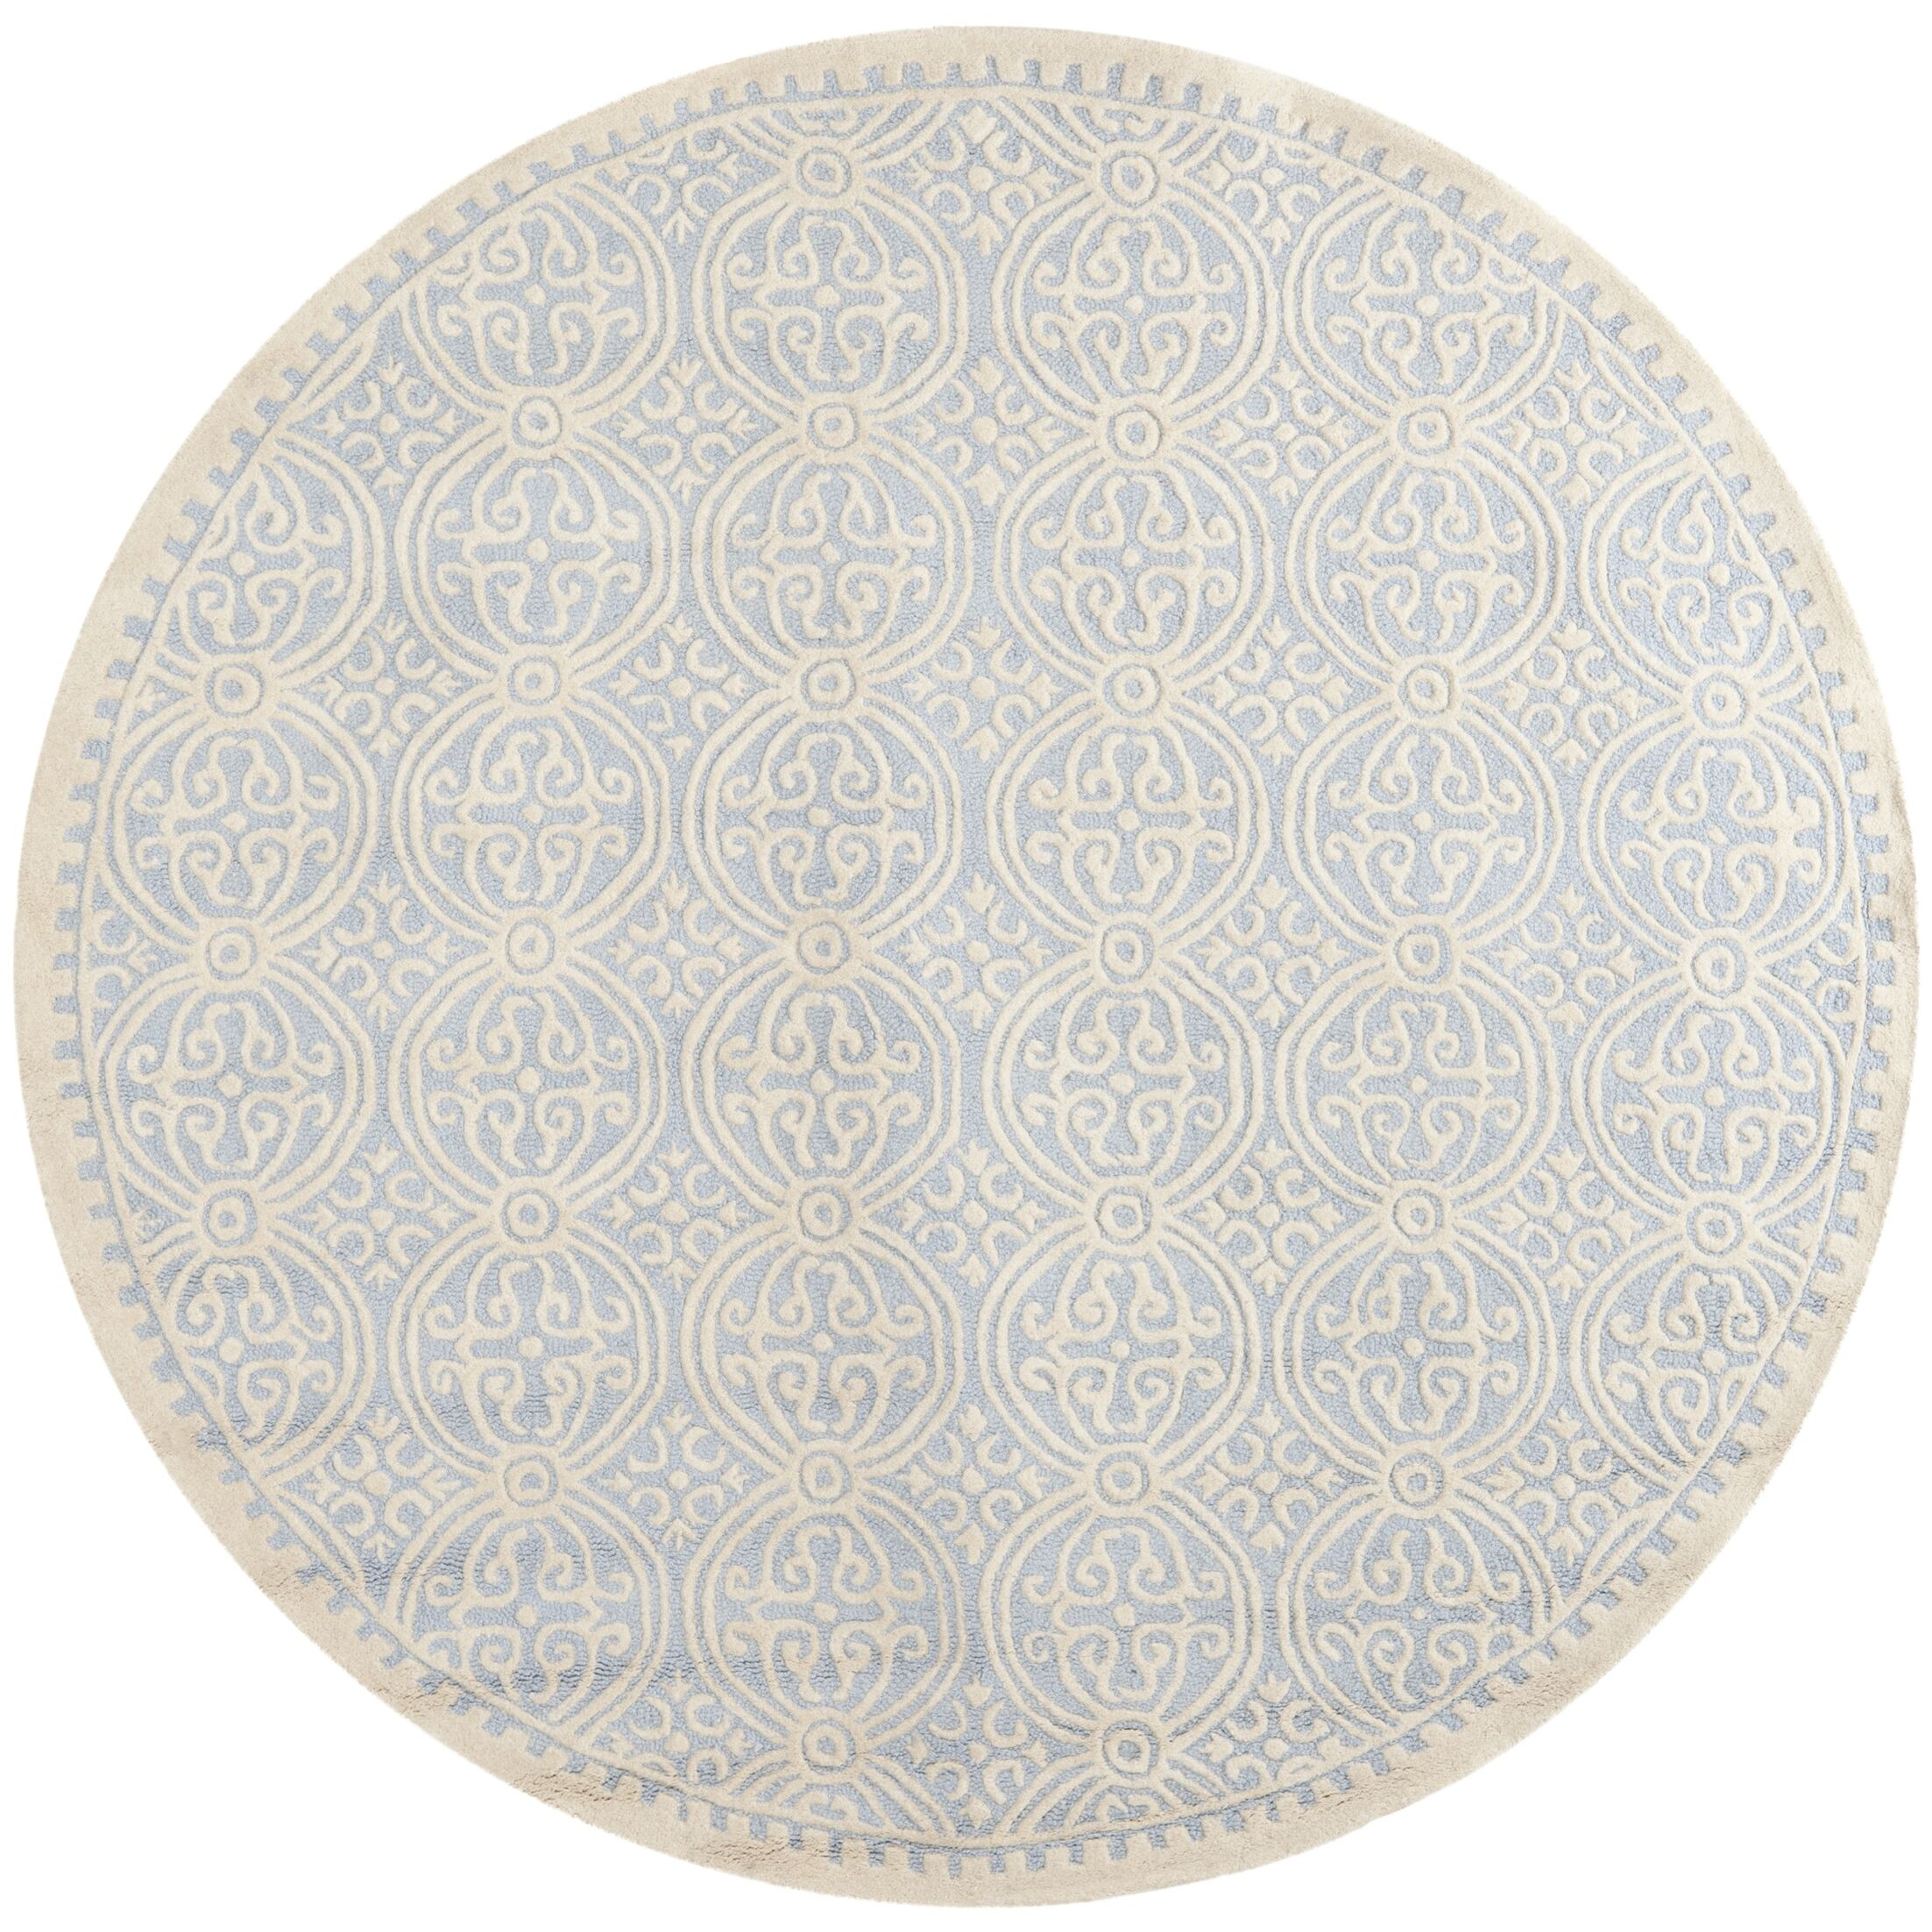 Martins Hand-Tufted Wool Light Blue/Ivory Area Rug Rug Size: Round 4'